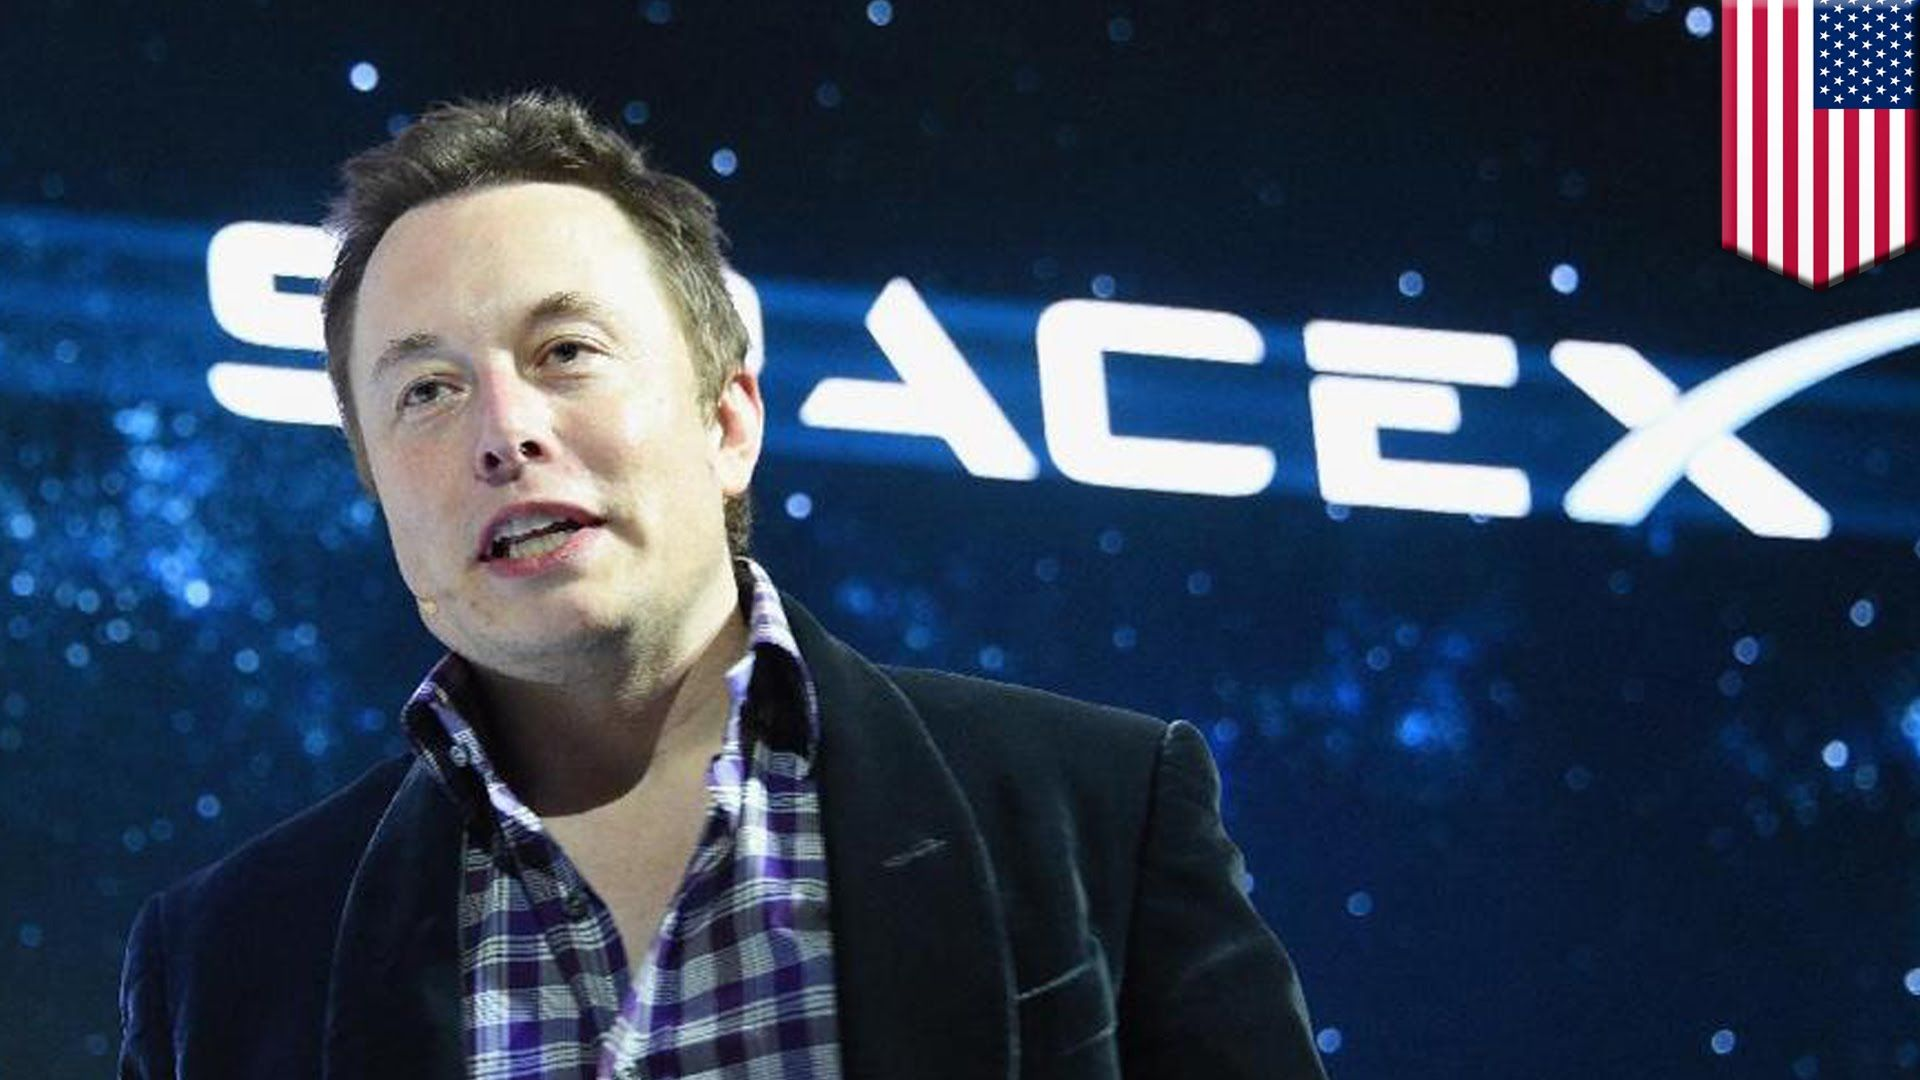 Spacex Internet Satellites Elon Musk Confirms Plan To Launch Fleet Of 7 Elon Musk Mission To Mars Summer Reading Lists